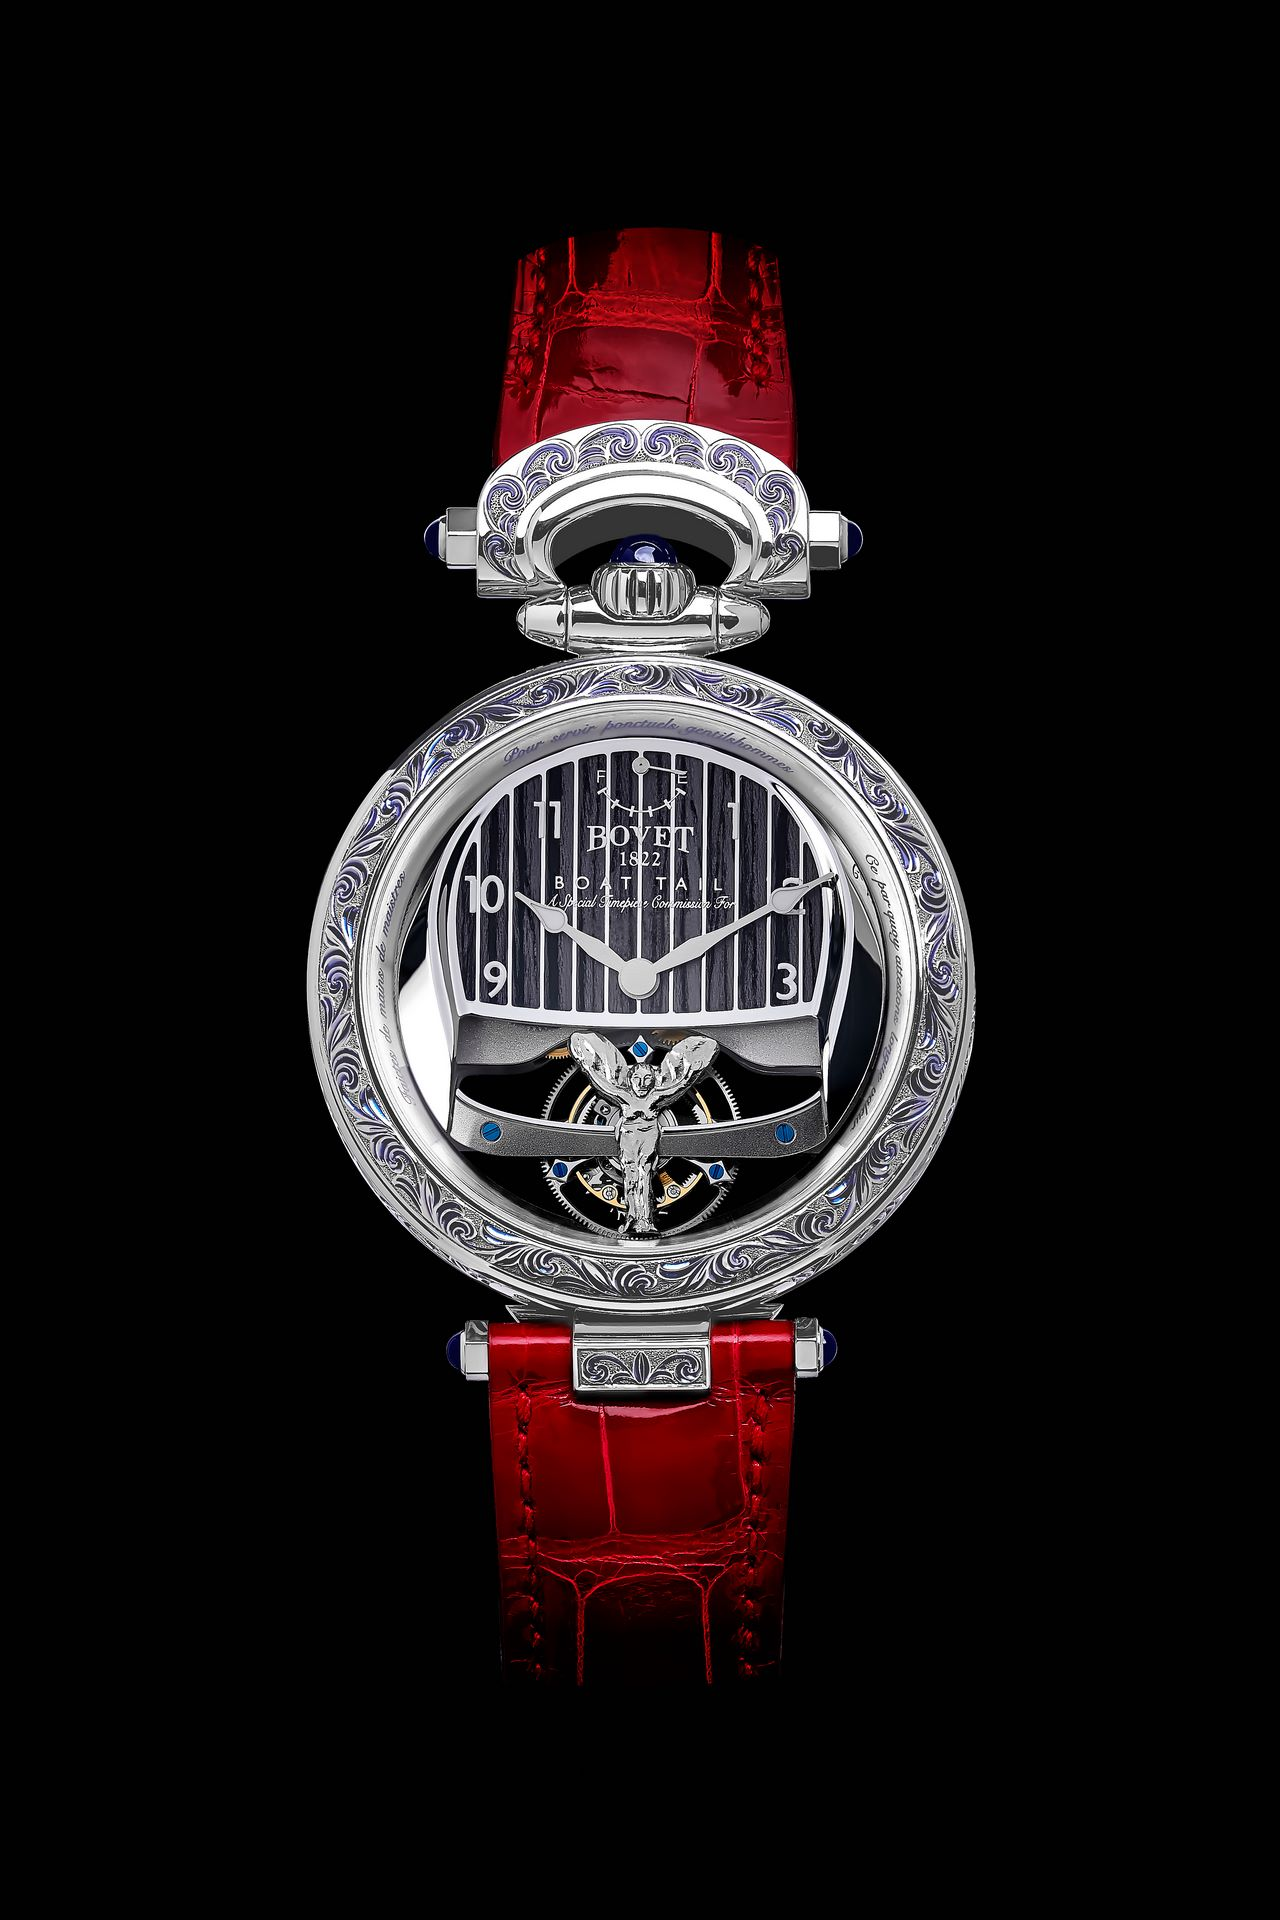 Rolls-Royce-Boat-Tail-Bovet-1822-Watches-7